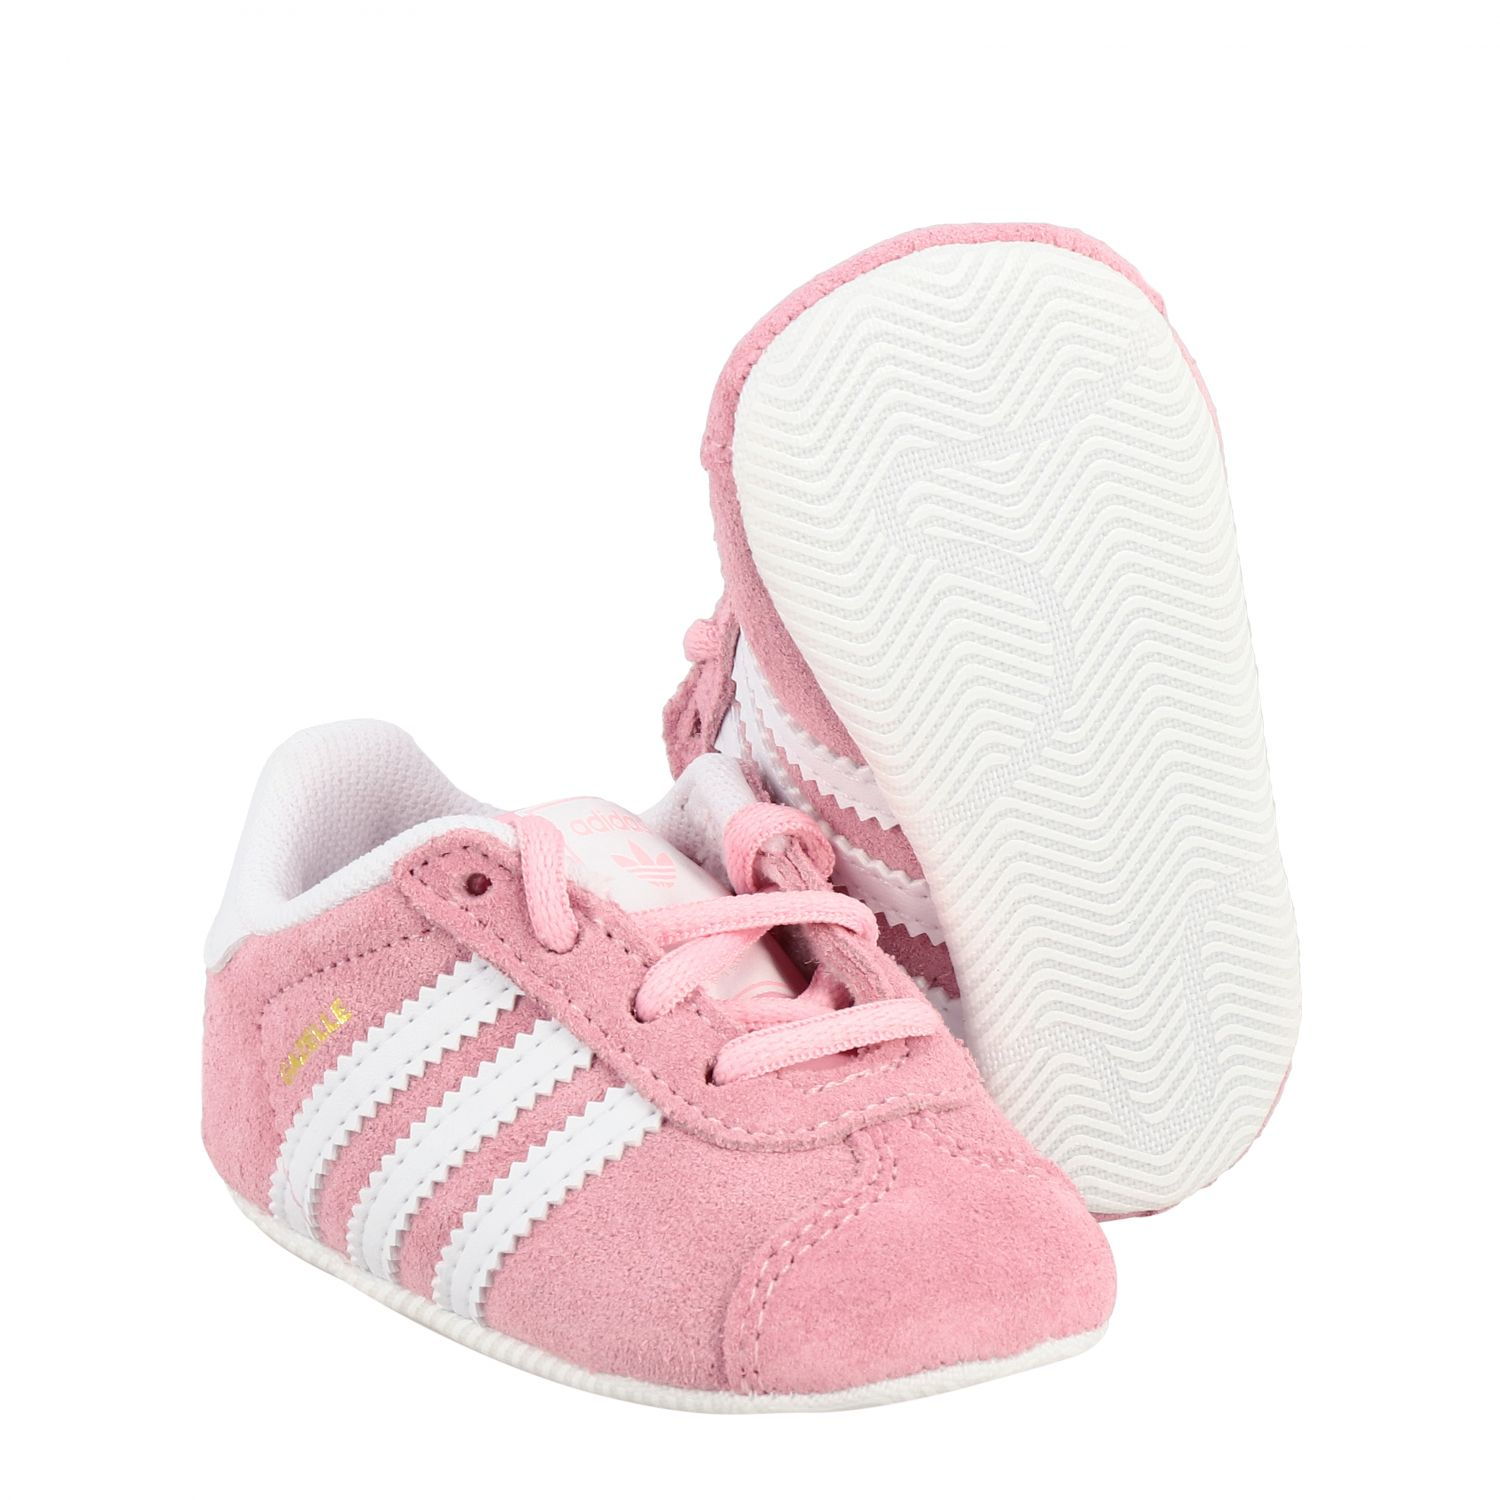 Baskets Gazelle Crib Adidas Originals en daim et cuir rose 2